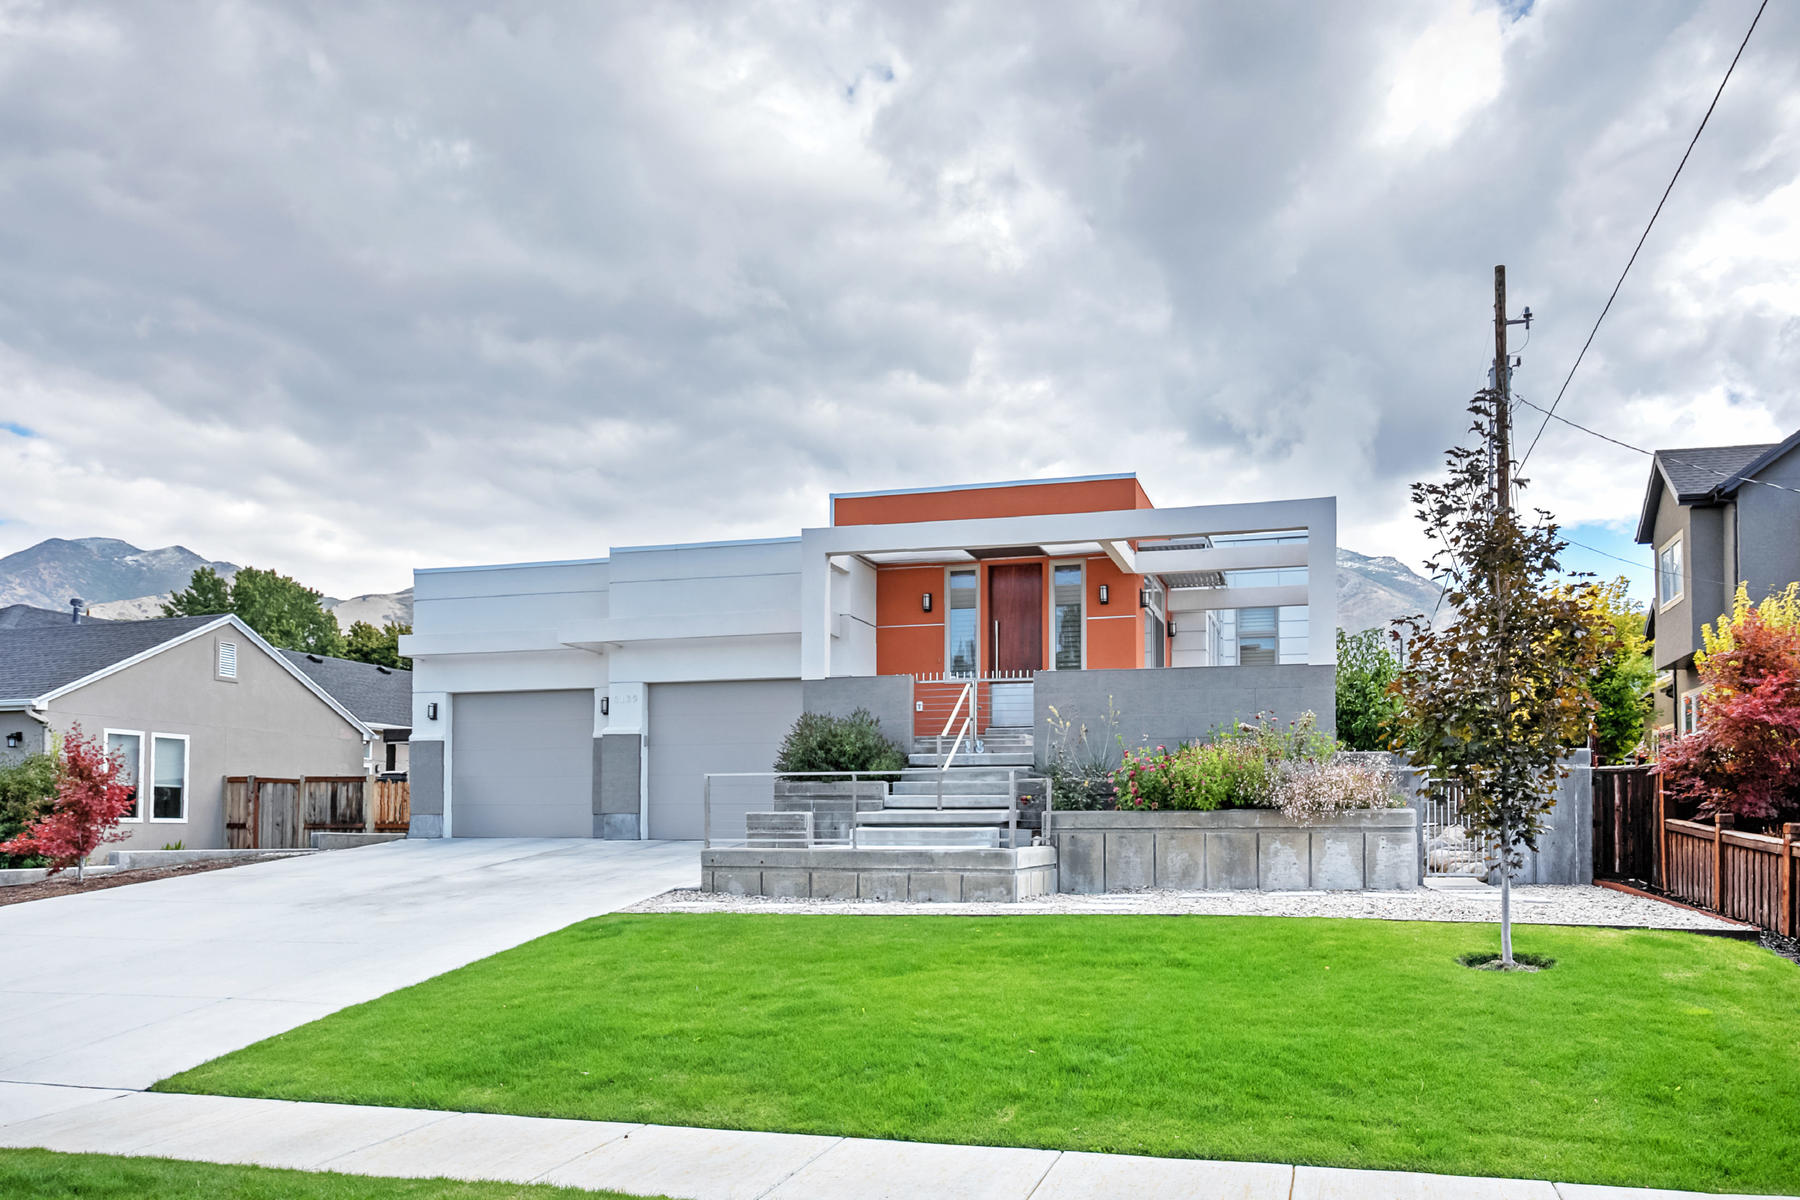 Single Family Home for Sale at Incredible Custom Contemporary Home 3139 South 2600 East Salt Lake City, Utah 84109 United States